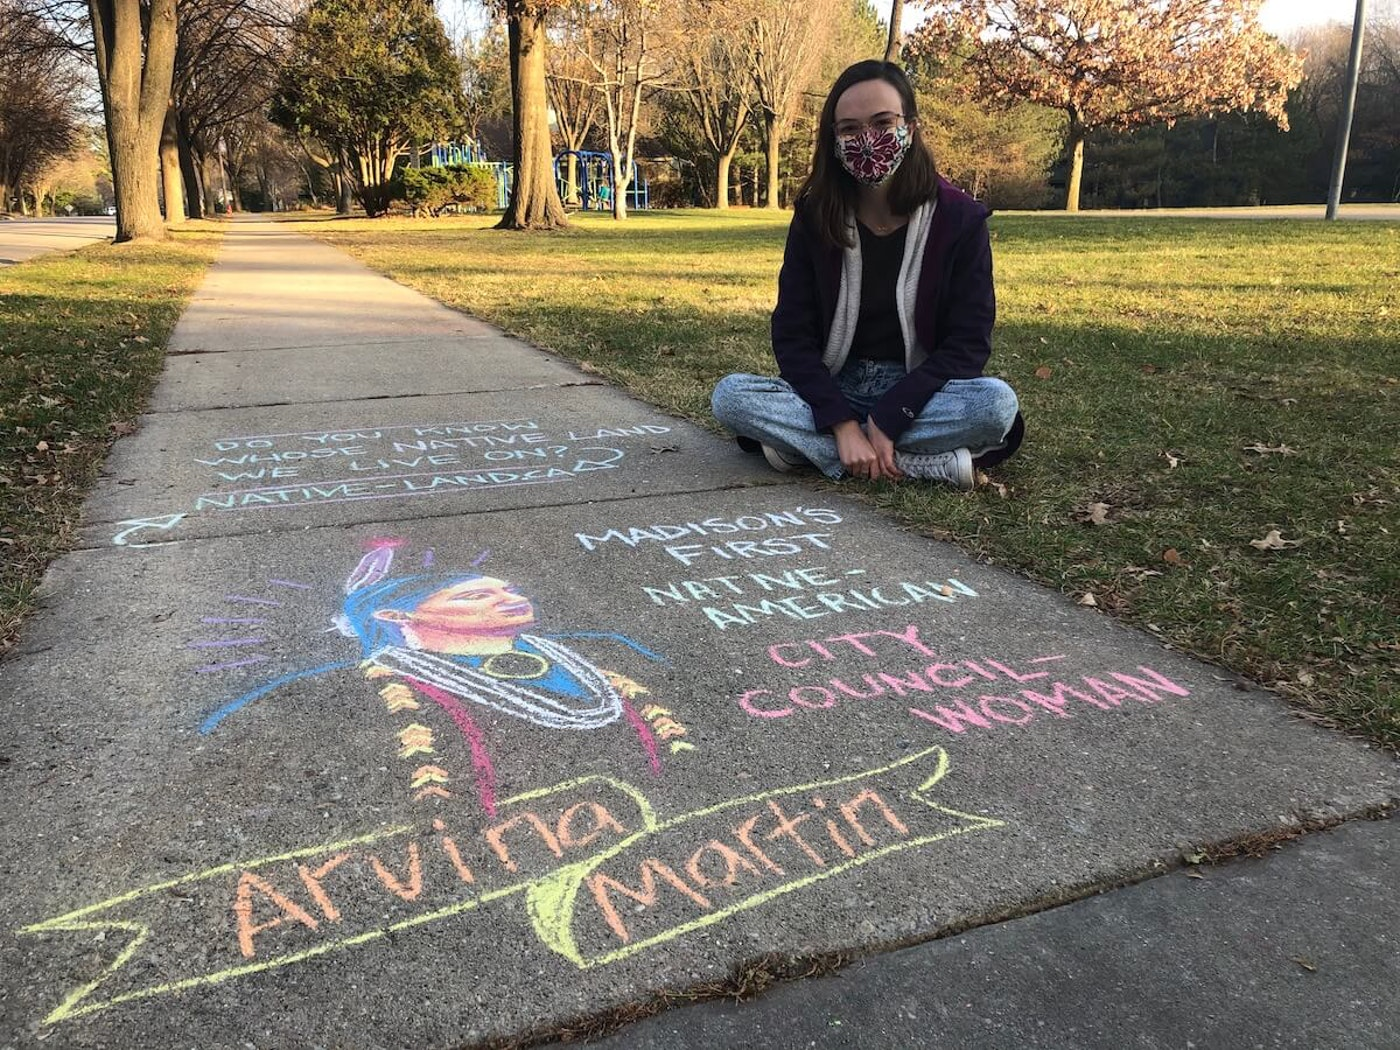 For the past four months, 25-year-old Veronica Lourich has been chalking the images of groundbreaking individuals on the sidewalk near her Madison home. (Photo by Jessica VanEgeren)